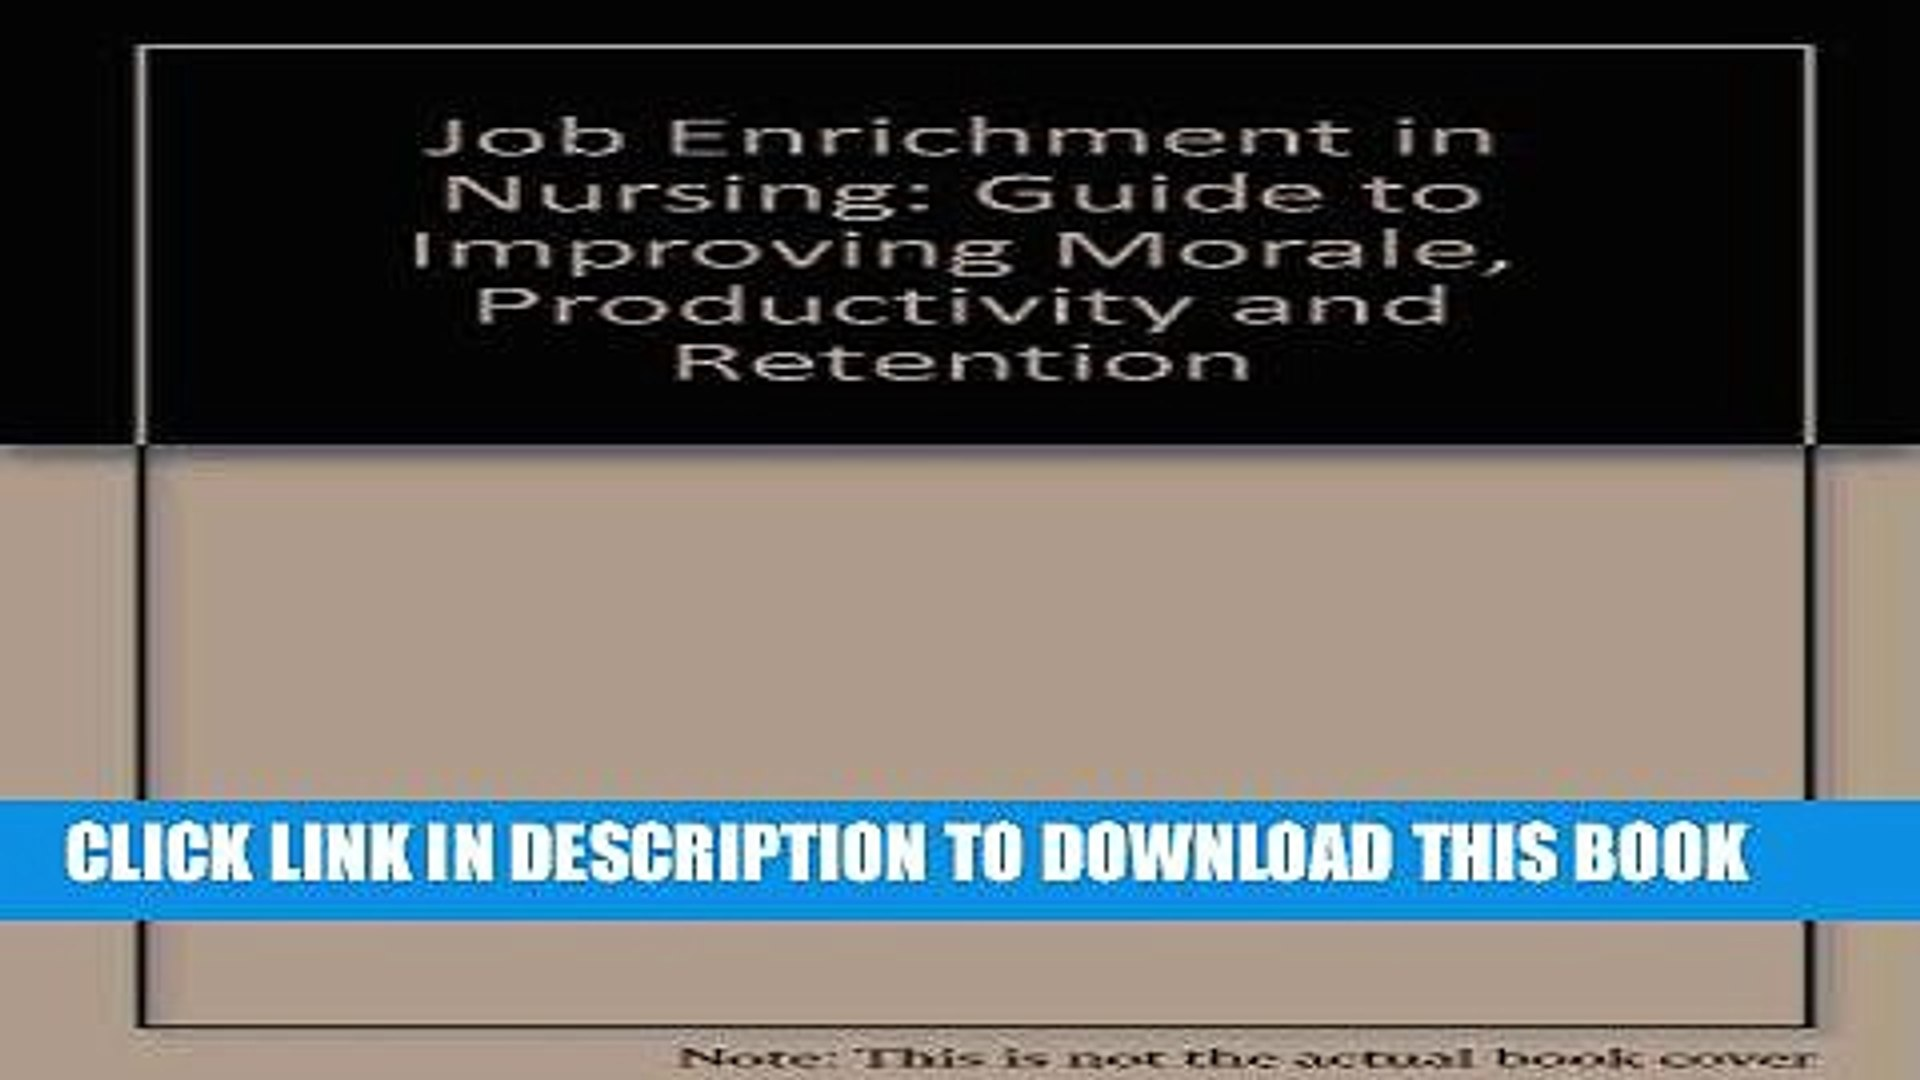 [PDF] FREE Job Enrichment in Nursing: Guide to Improving Morale,  Productivity and Retention